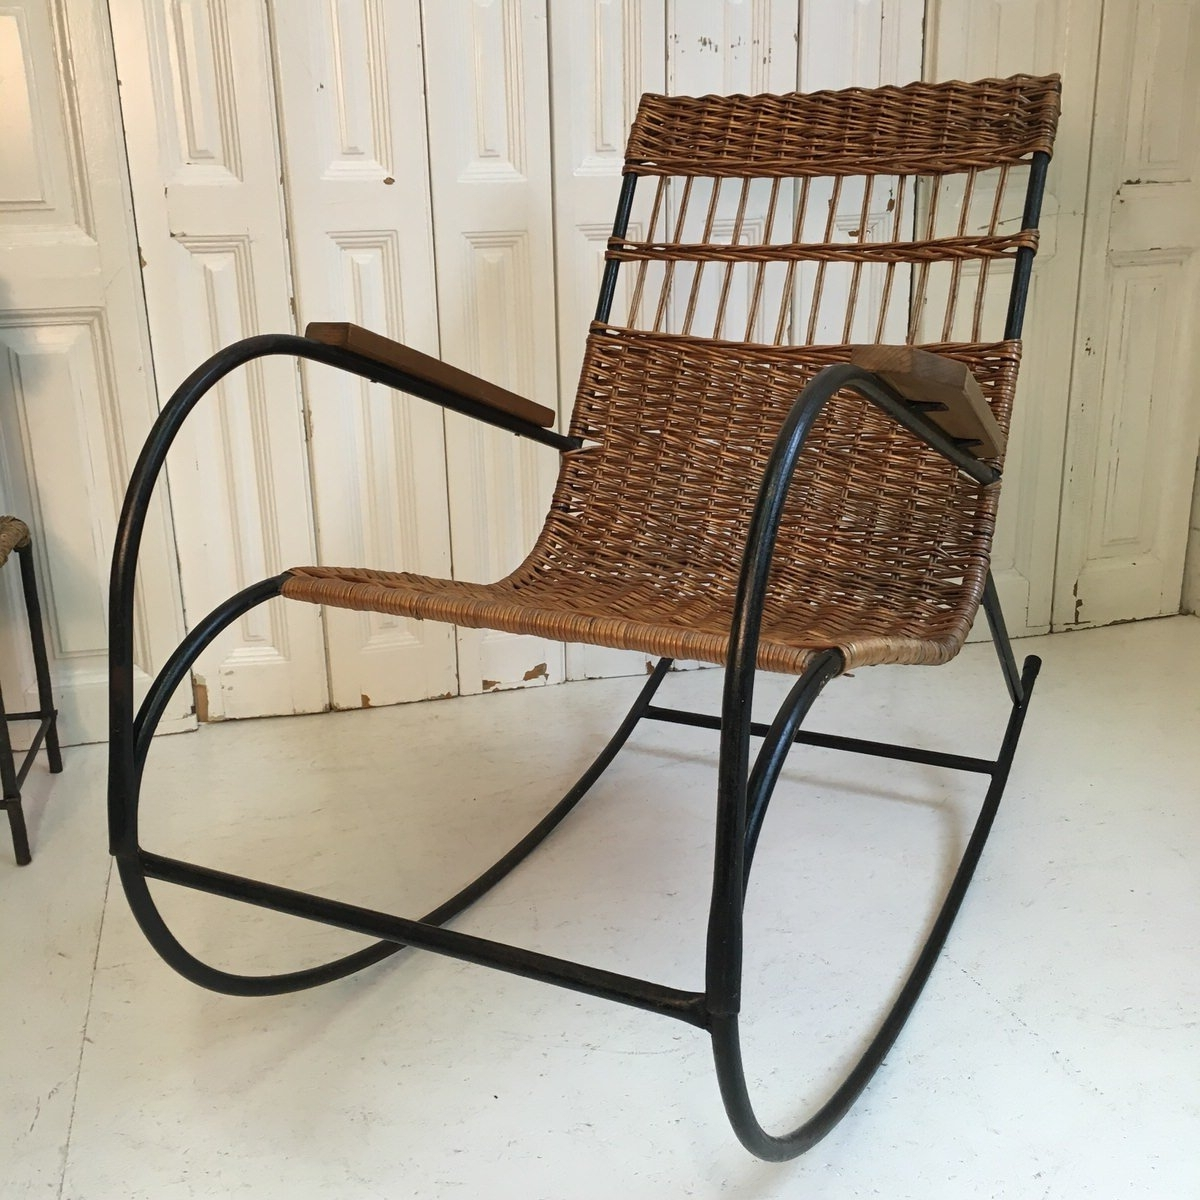 Buy Wicker Rocking Chair Antique Wicker Rocking Chair (View 4 of 15)